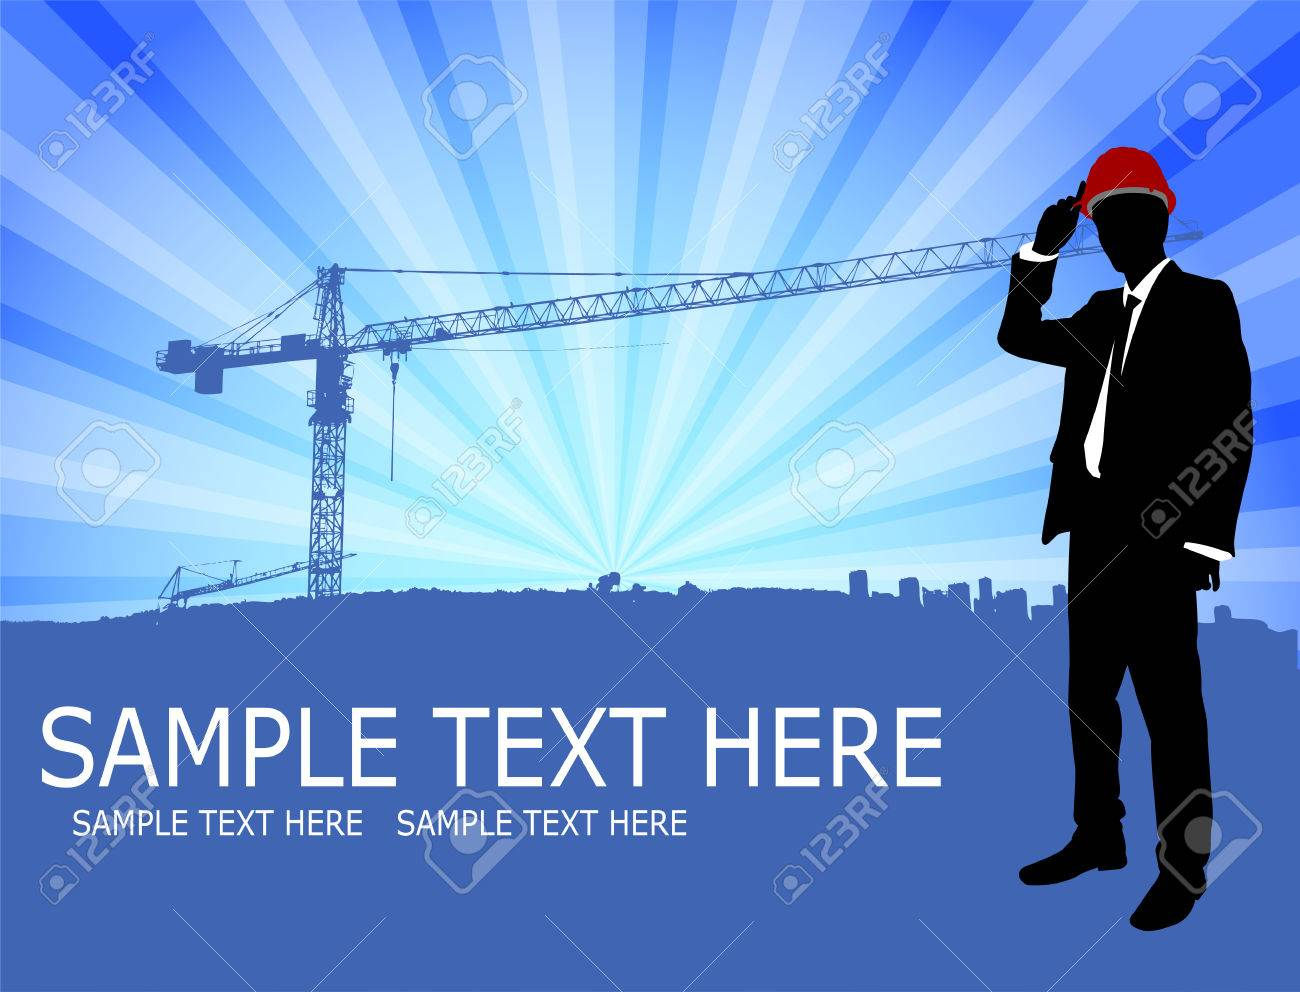 architect standing in front of abstract construction site background - 22427581